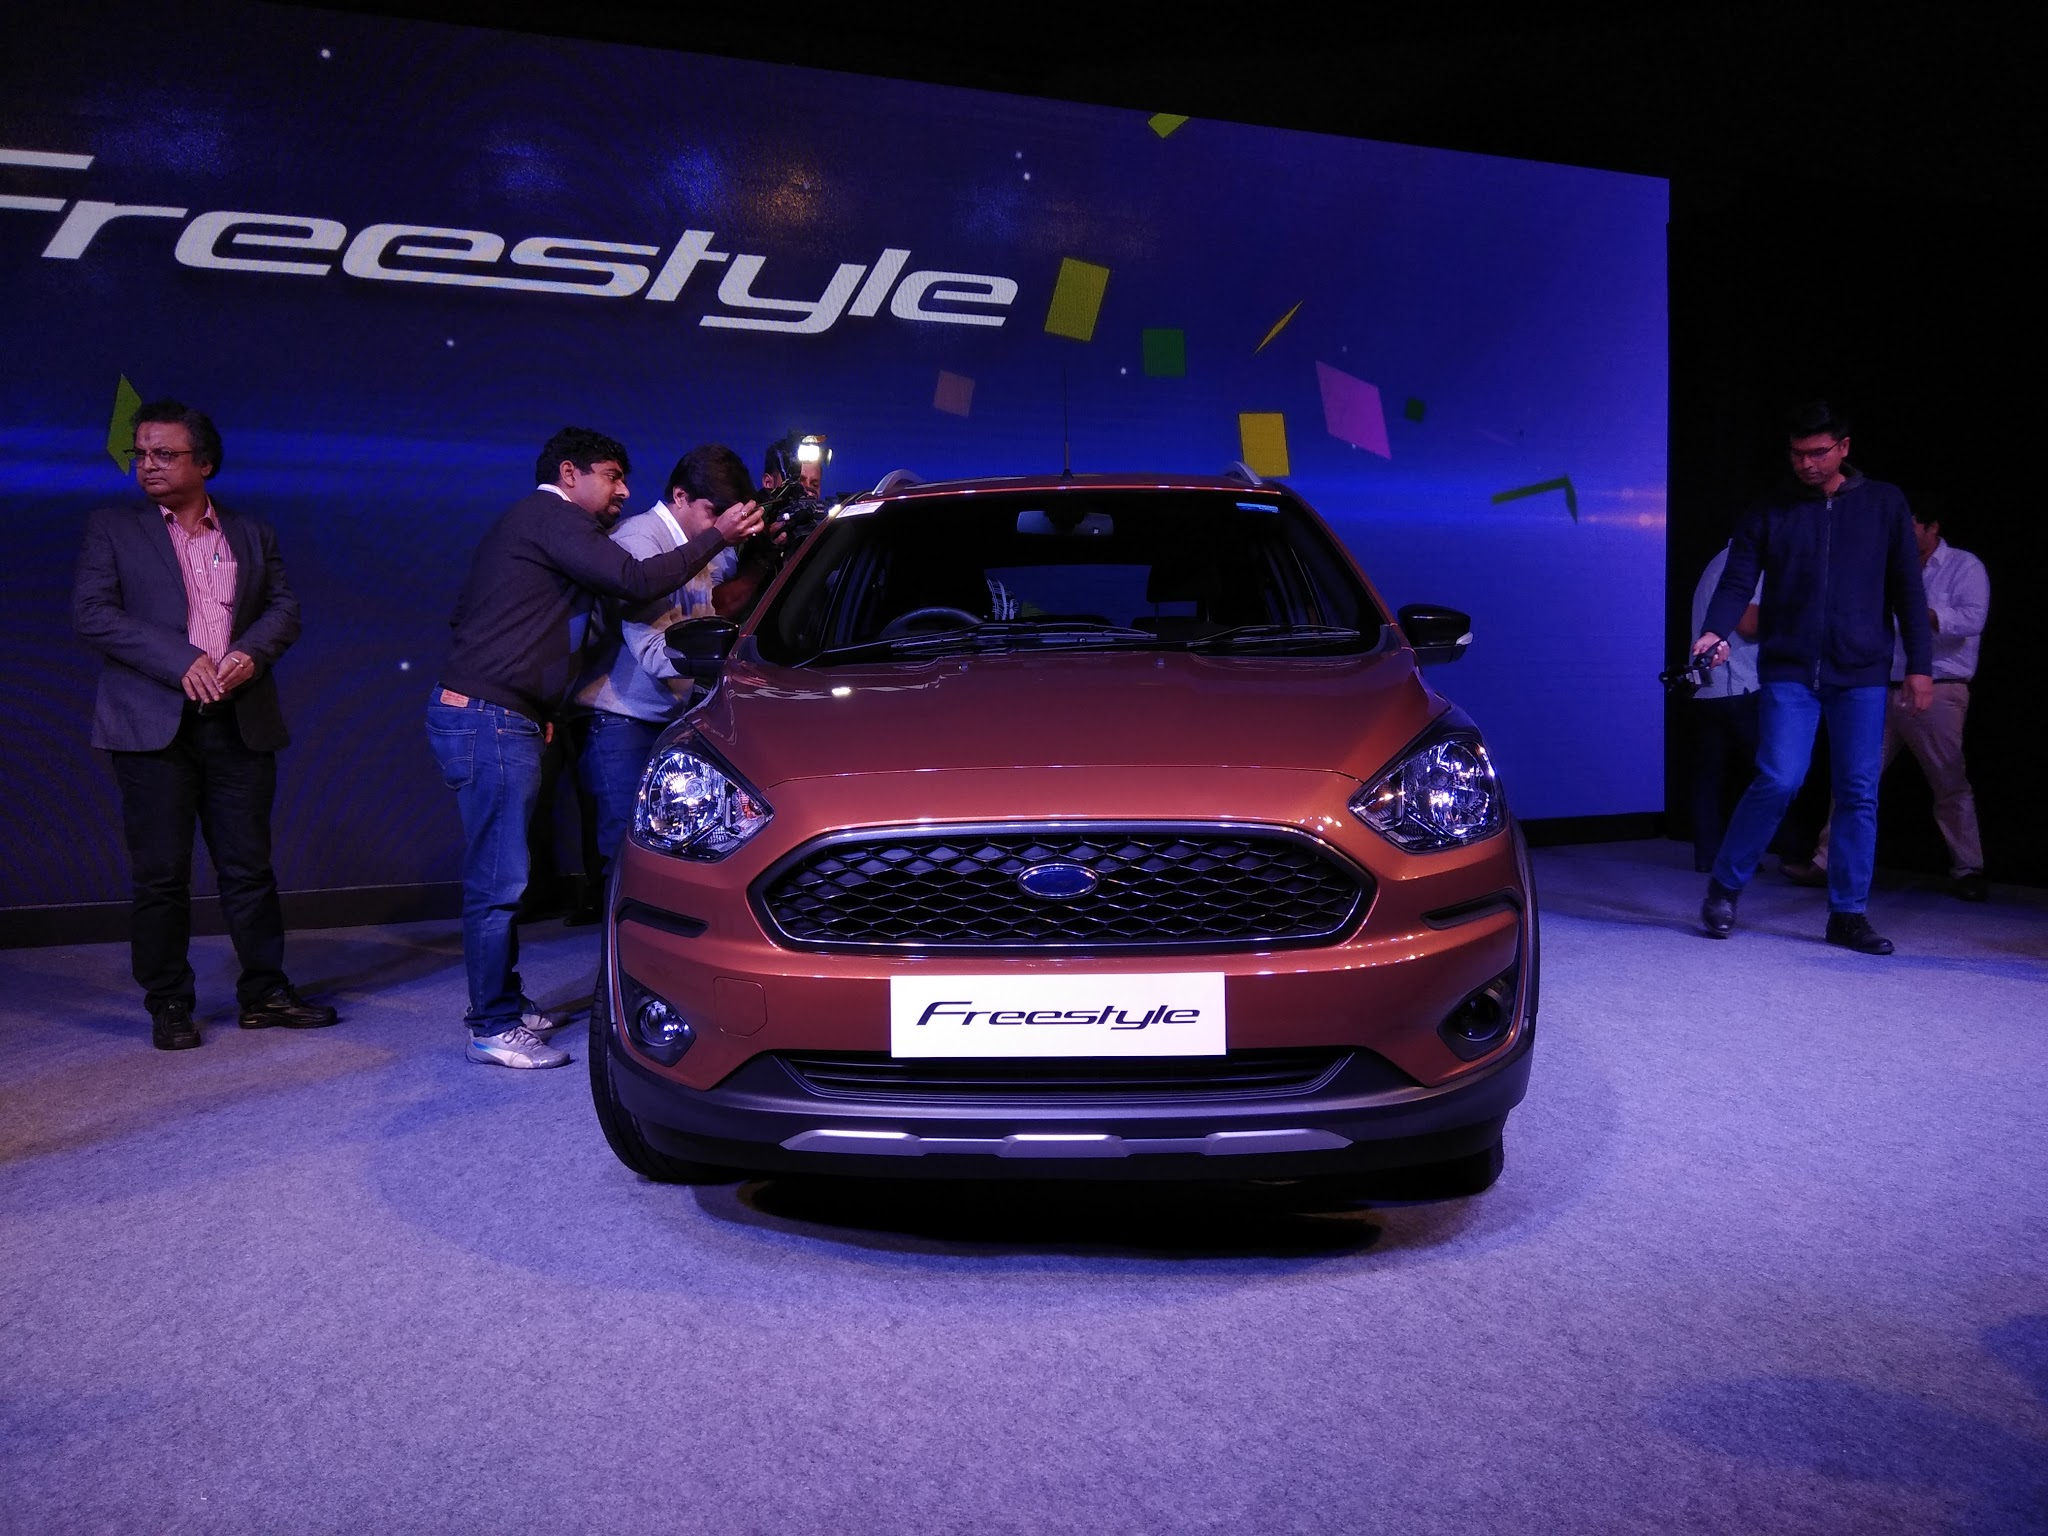 Ford Freestyle Compact Utility Vehicle Unveiled In India; Launch by Second Quarter